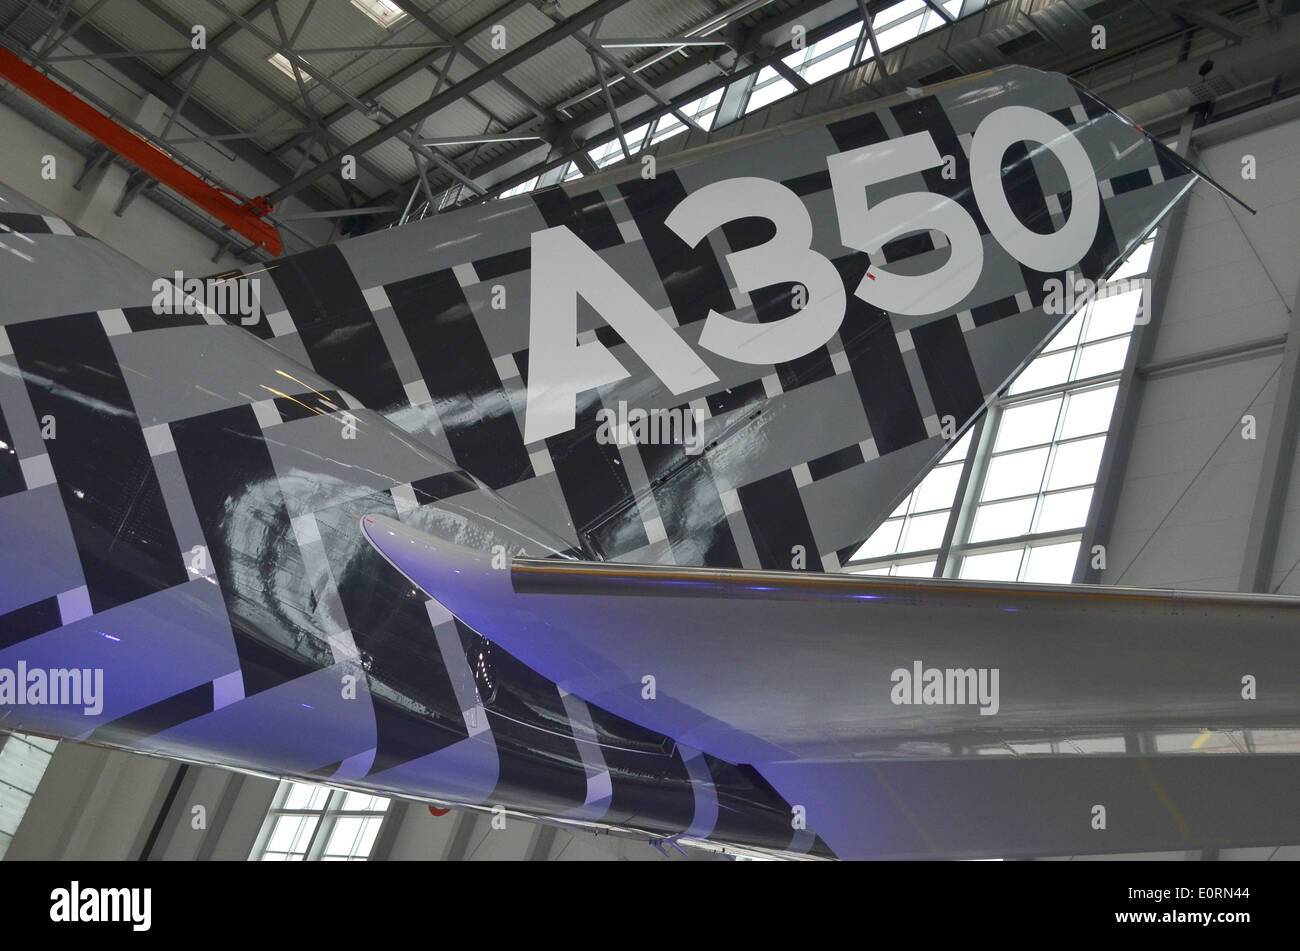 Tailfin of an Airbus A350XWB at the Airbus headquarters in Finkenwerder, Hamburg, Germany - Stock Image